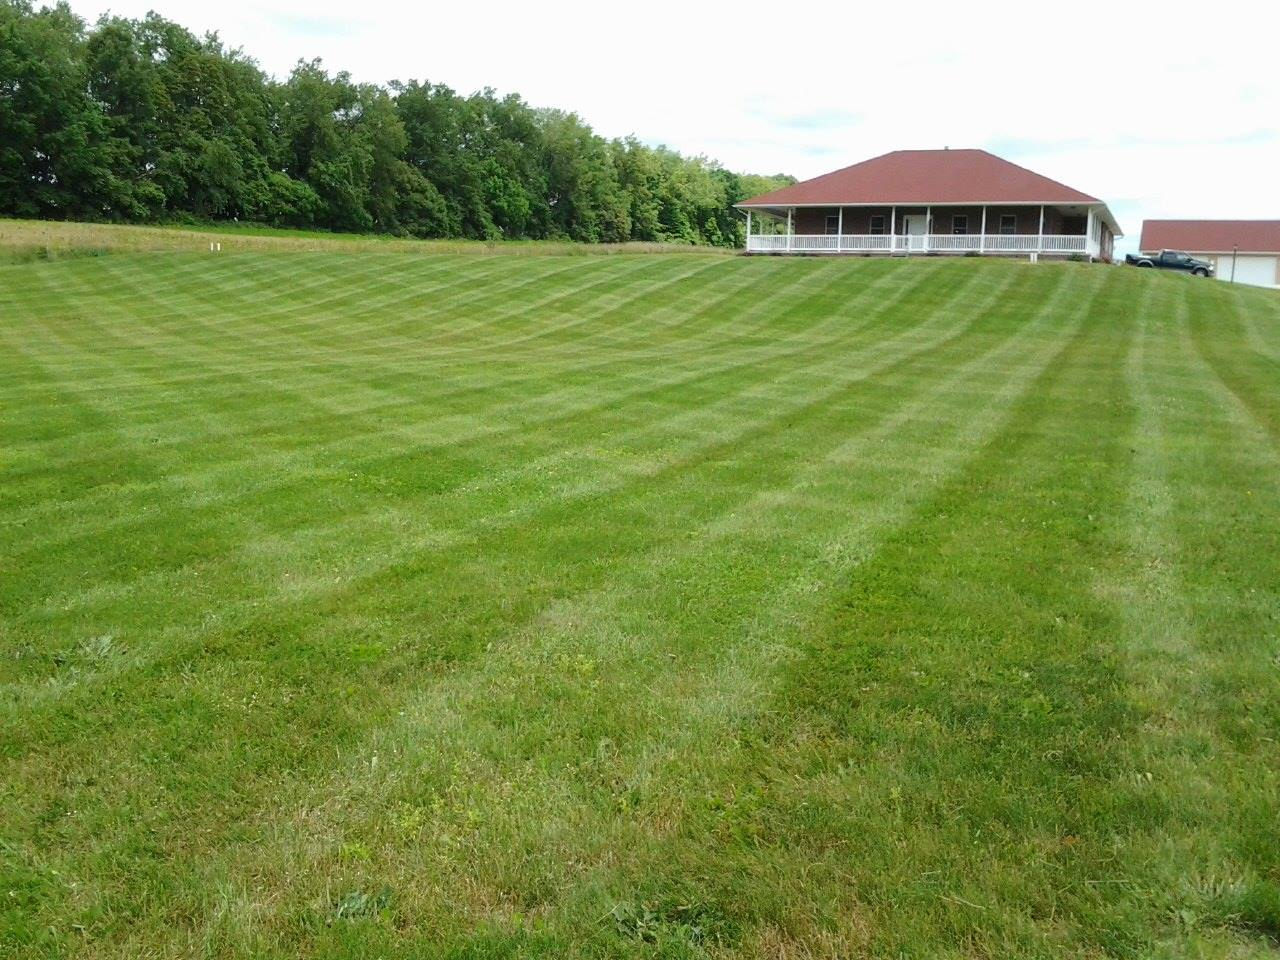 lawn care, clinton oh lawn mowing, clinton ohio, landscaper, lawn care service, mowing services, 44216,